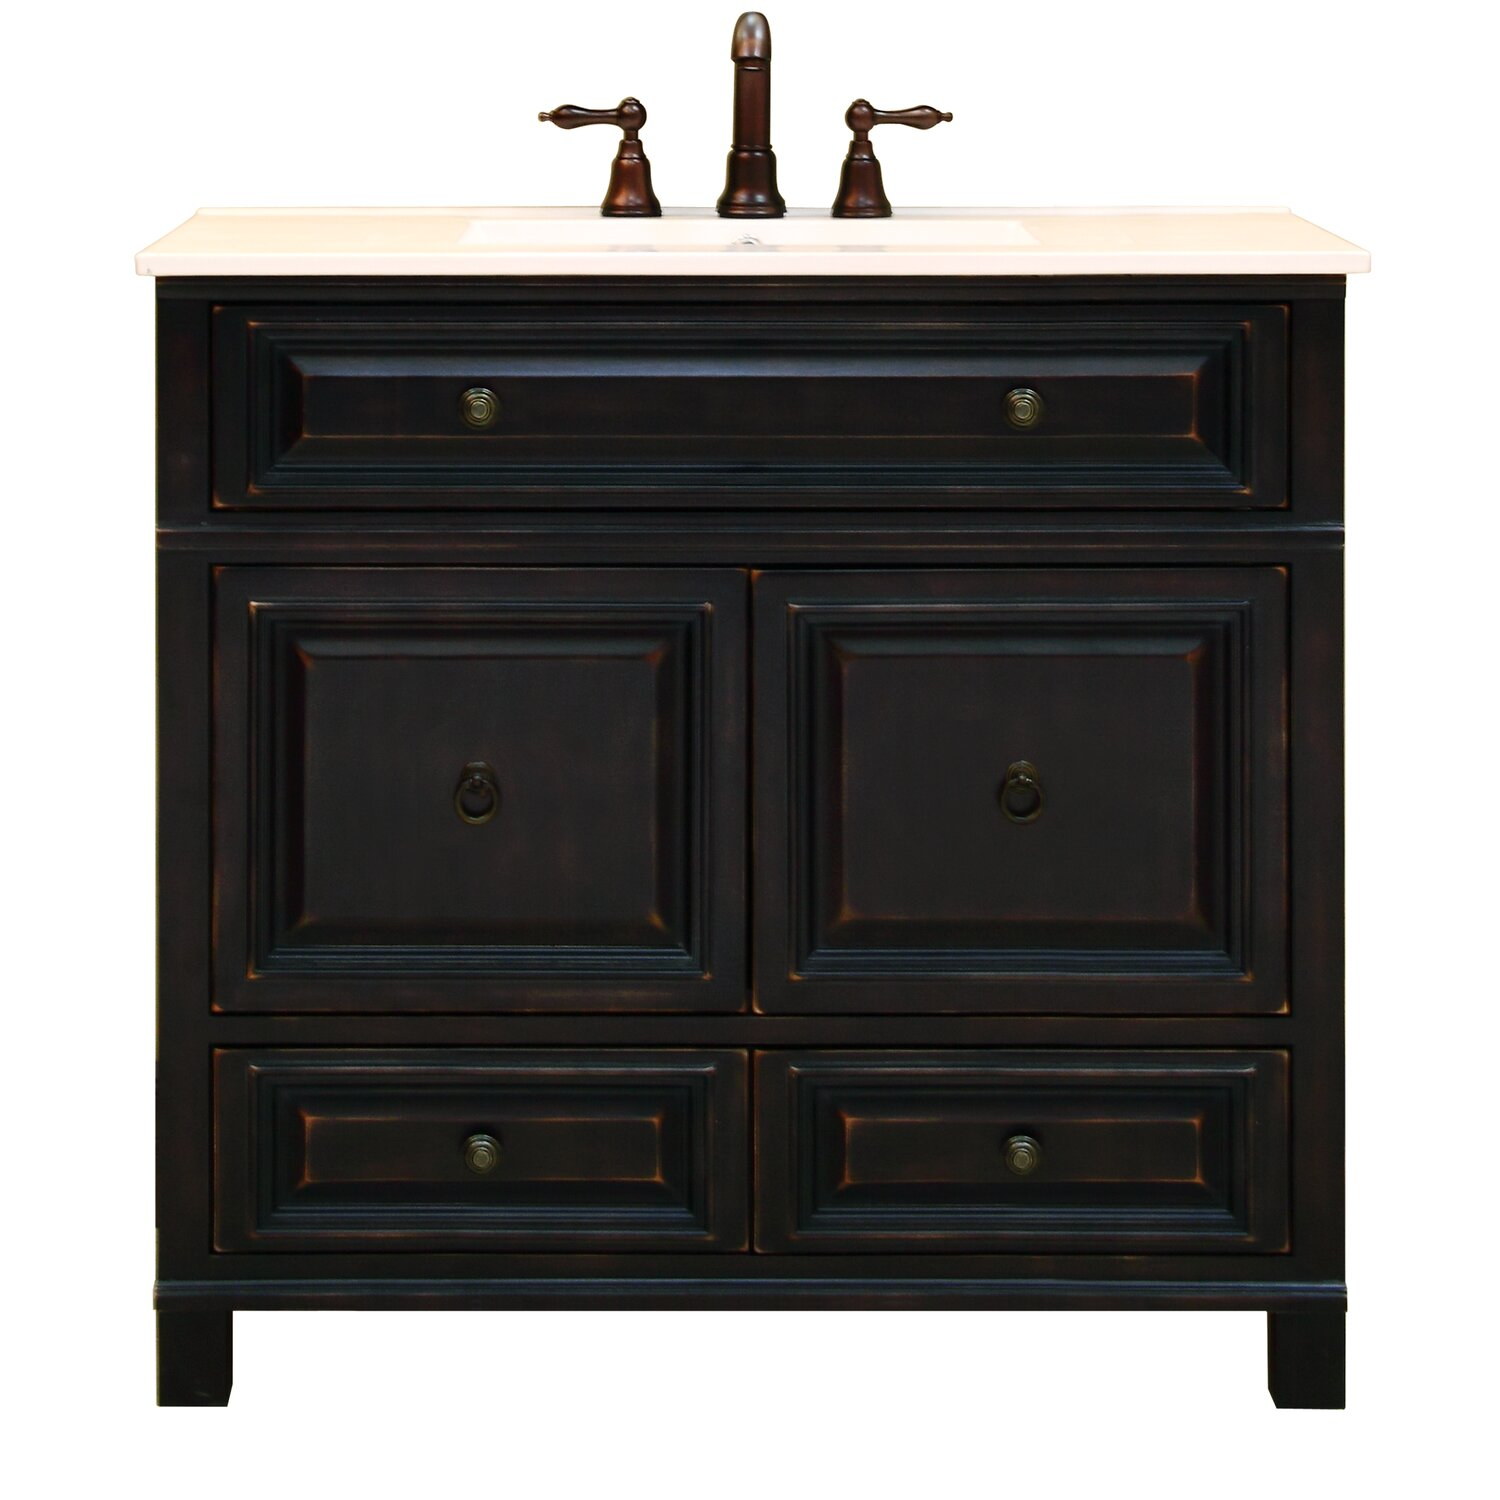 Bathroom Vanity Without Sink Top Cabis. bathroom vanities without sinks   Bathroom Design Ideas